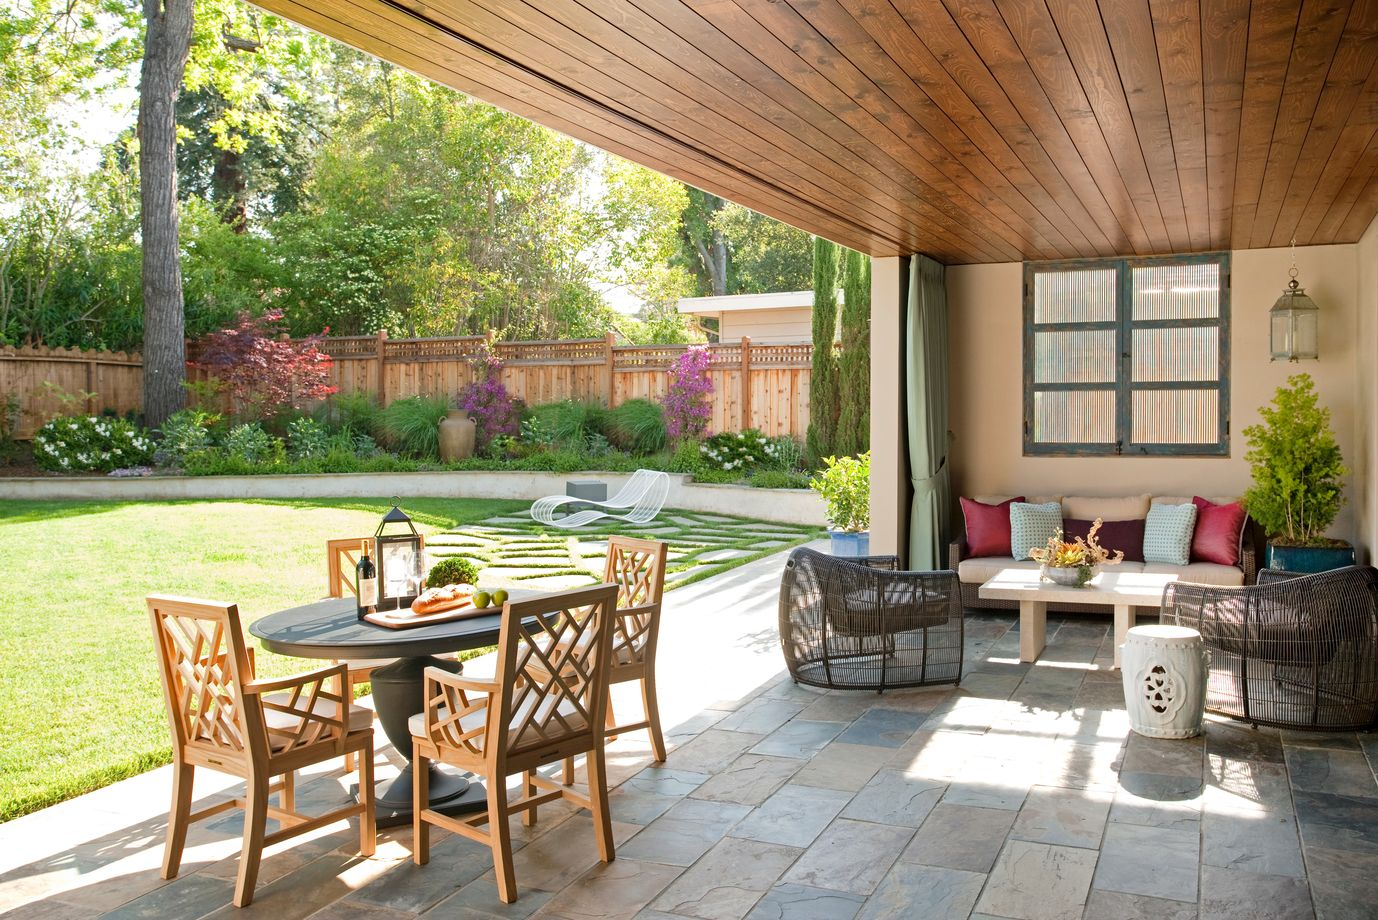 6 design ideas to perk up your outdoor living space with color